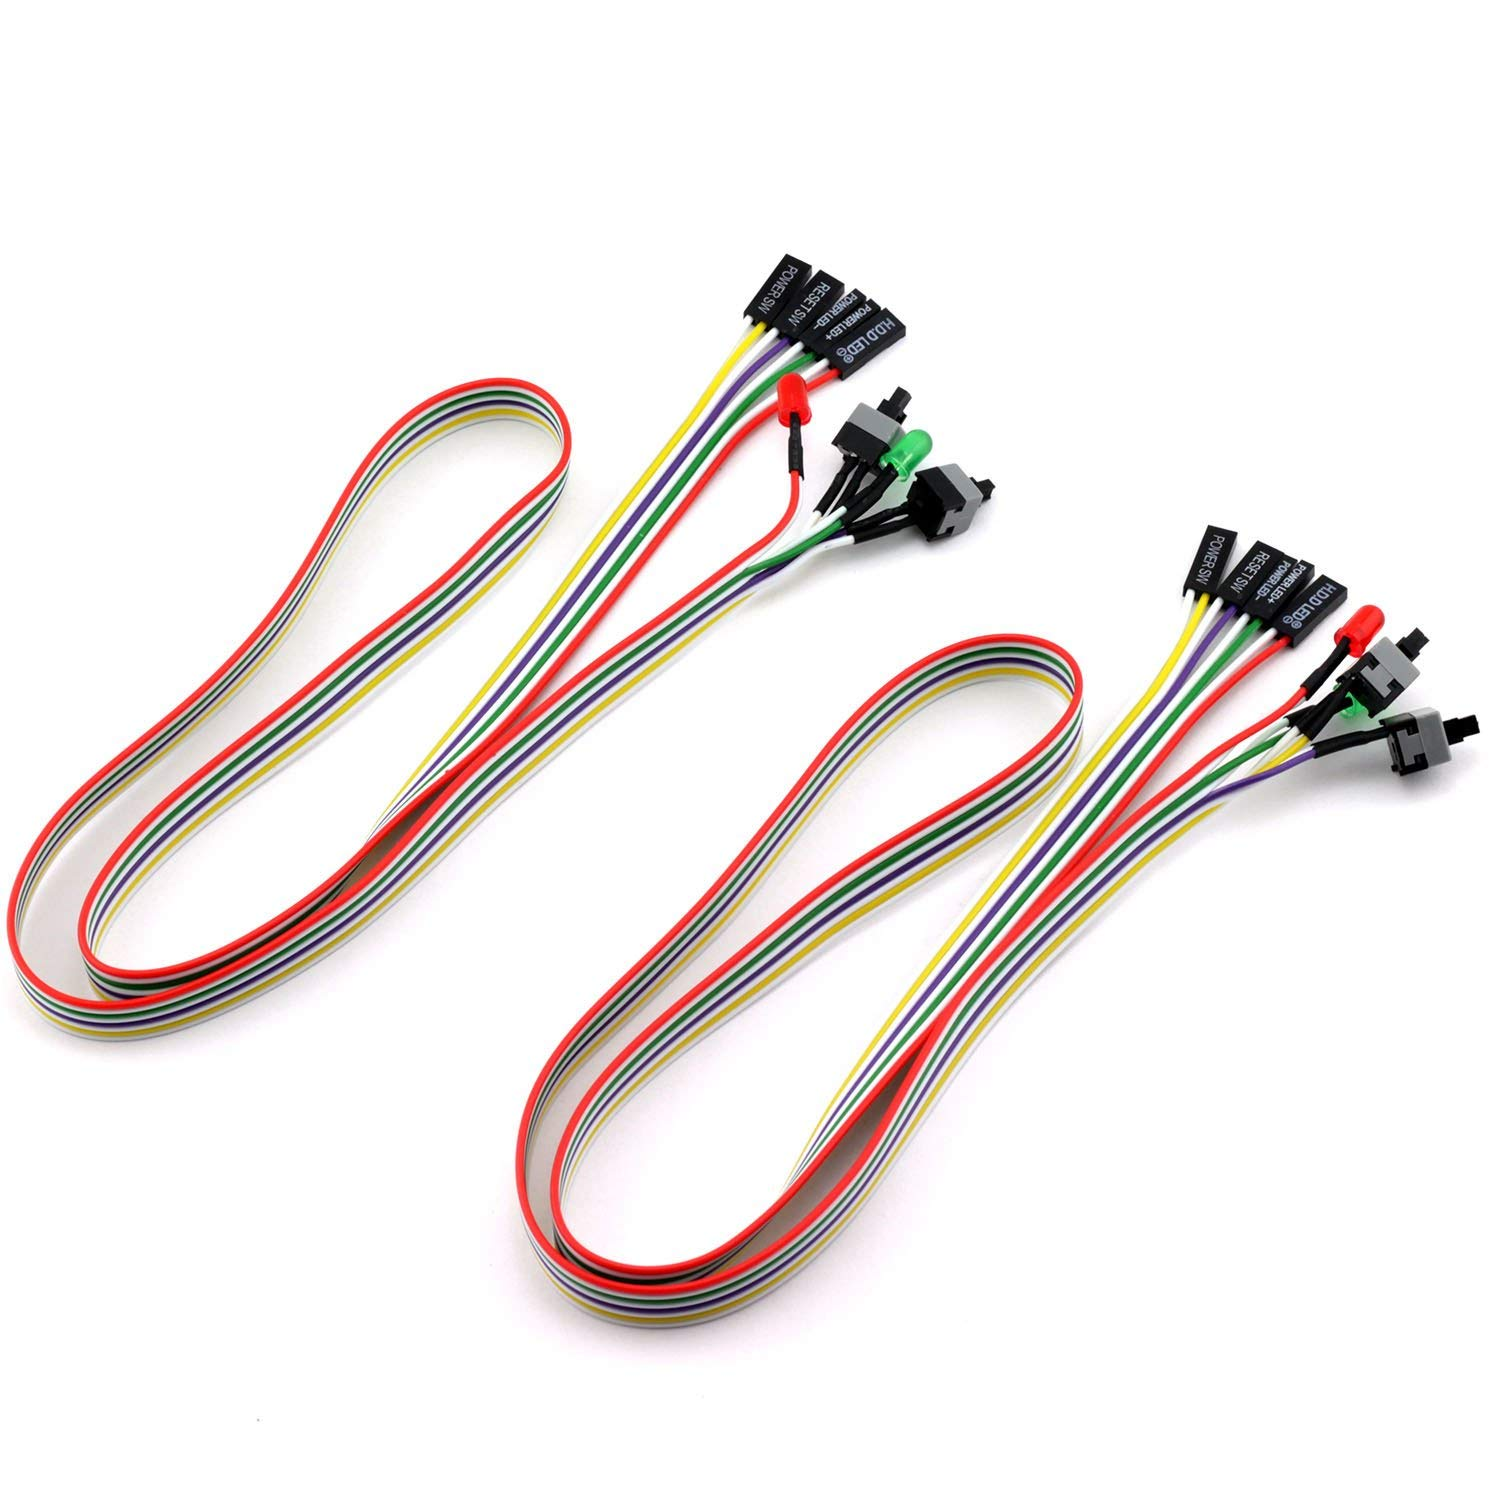 ToToT 2pcs PC Power Switch Cable with LED Light ATX Case Front Power Button PC Power Cable SW Re-starting Switch Desktop Computer Power Supply Reset HDD Switch Lead